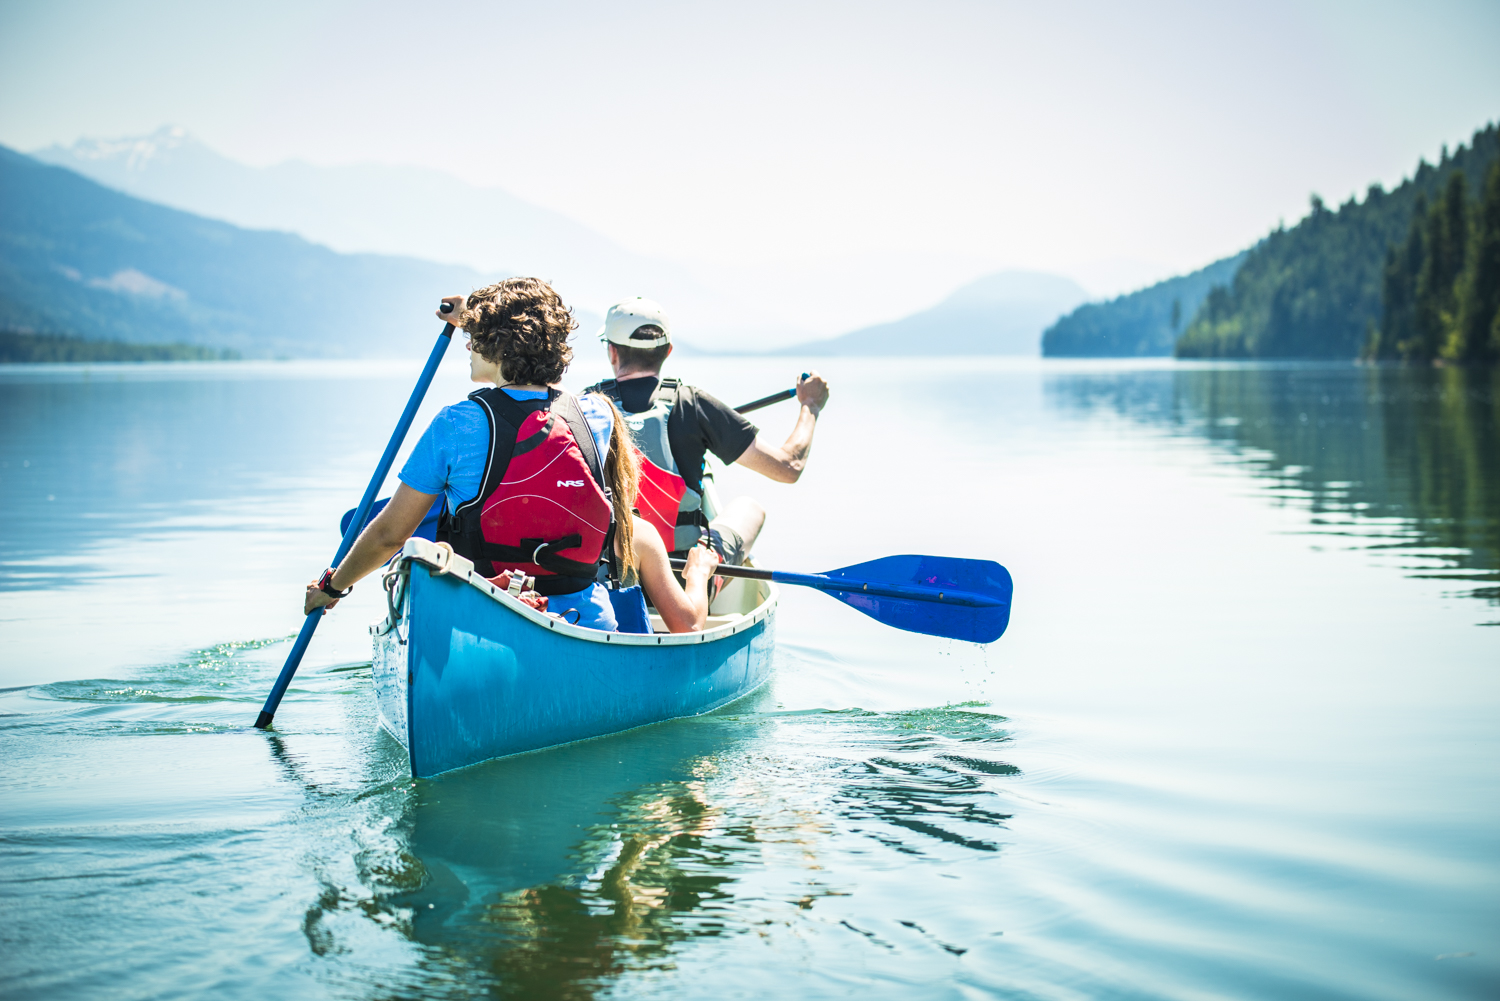 people enjoy views from their canoe of the jordan river and surrounding valleys in Revelstoke, British Columbia